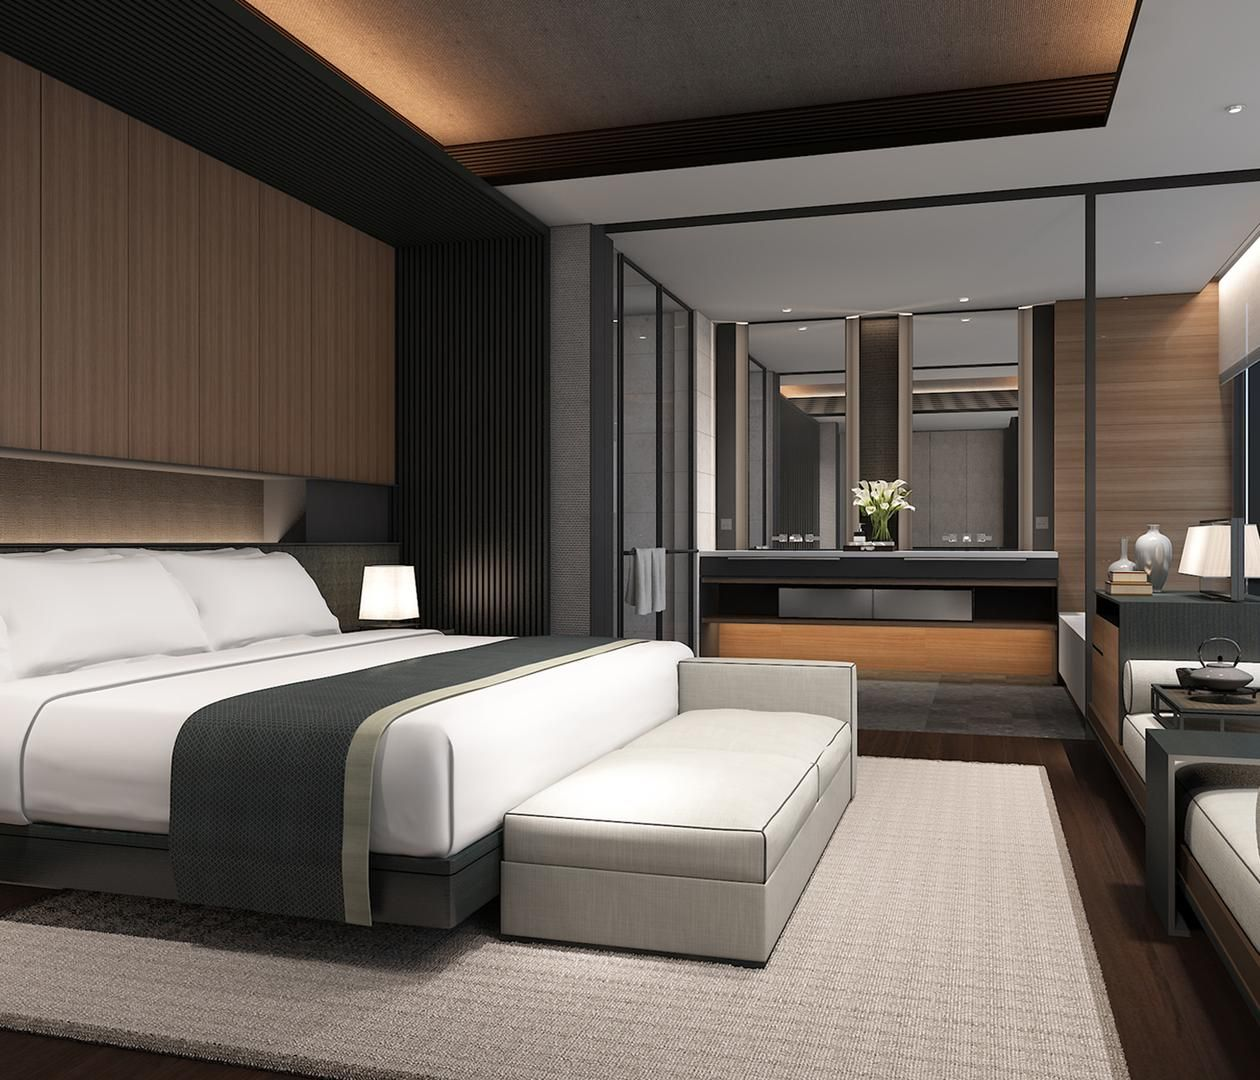 25 Best Modern Bedroom Designs: Http://images.scdaarchitects.com/www_scdaarchitects_com